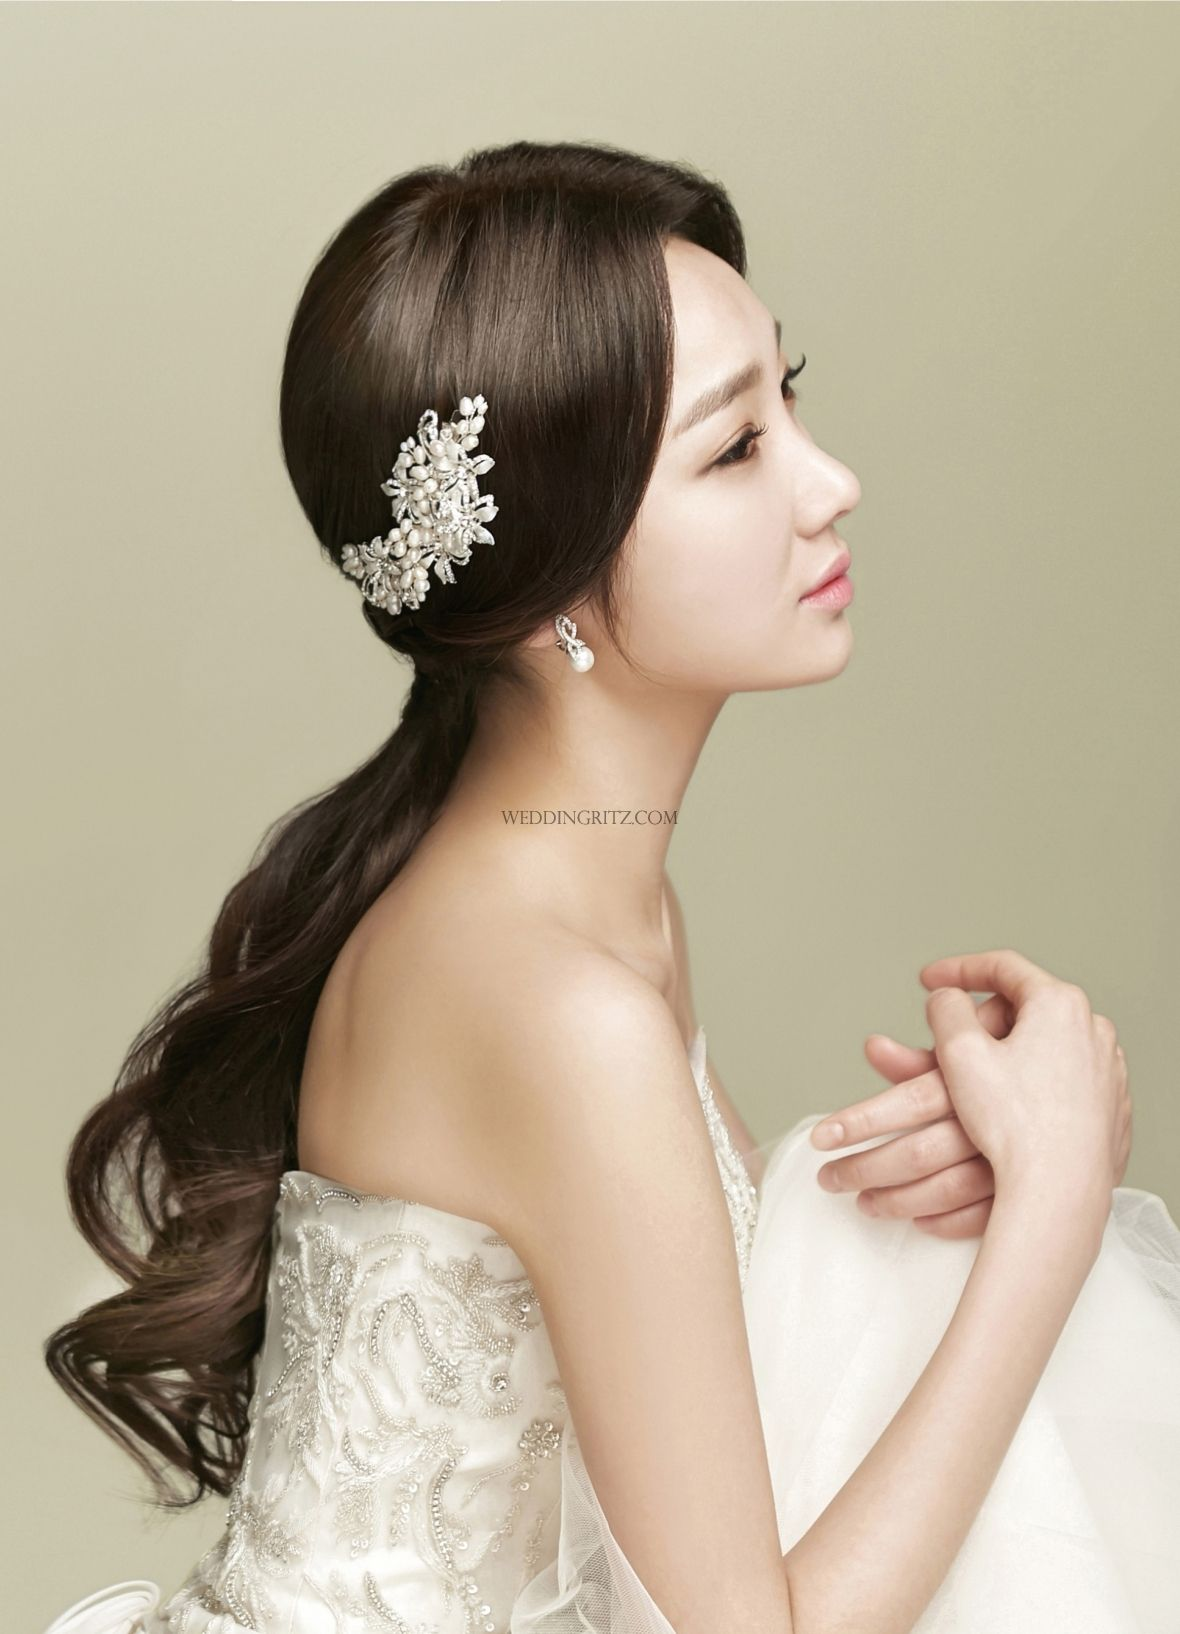 Pine Tree By Jins Make Up Hair Artbook For Your Pre Wedding In Korea